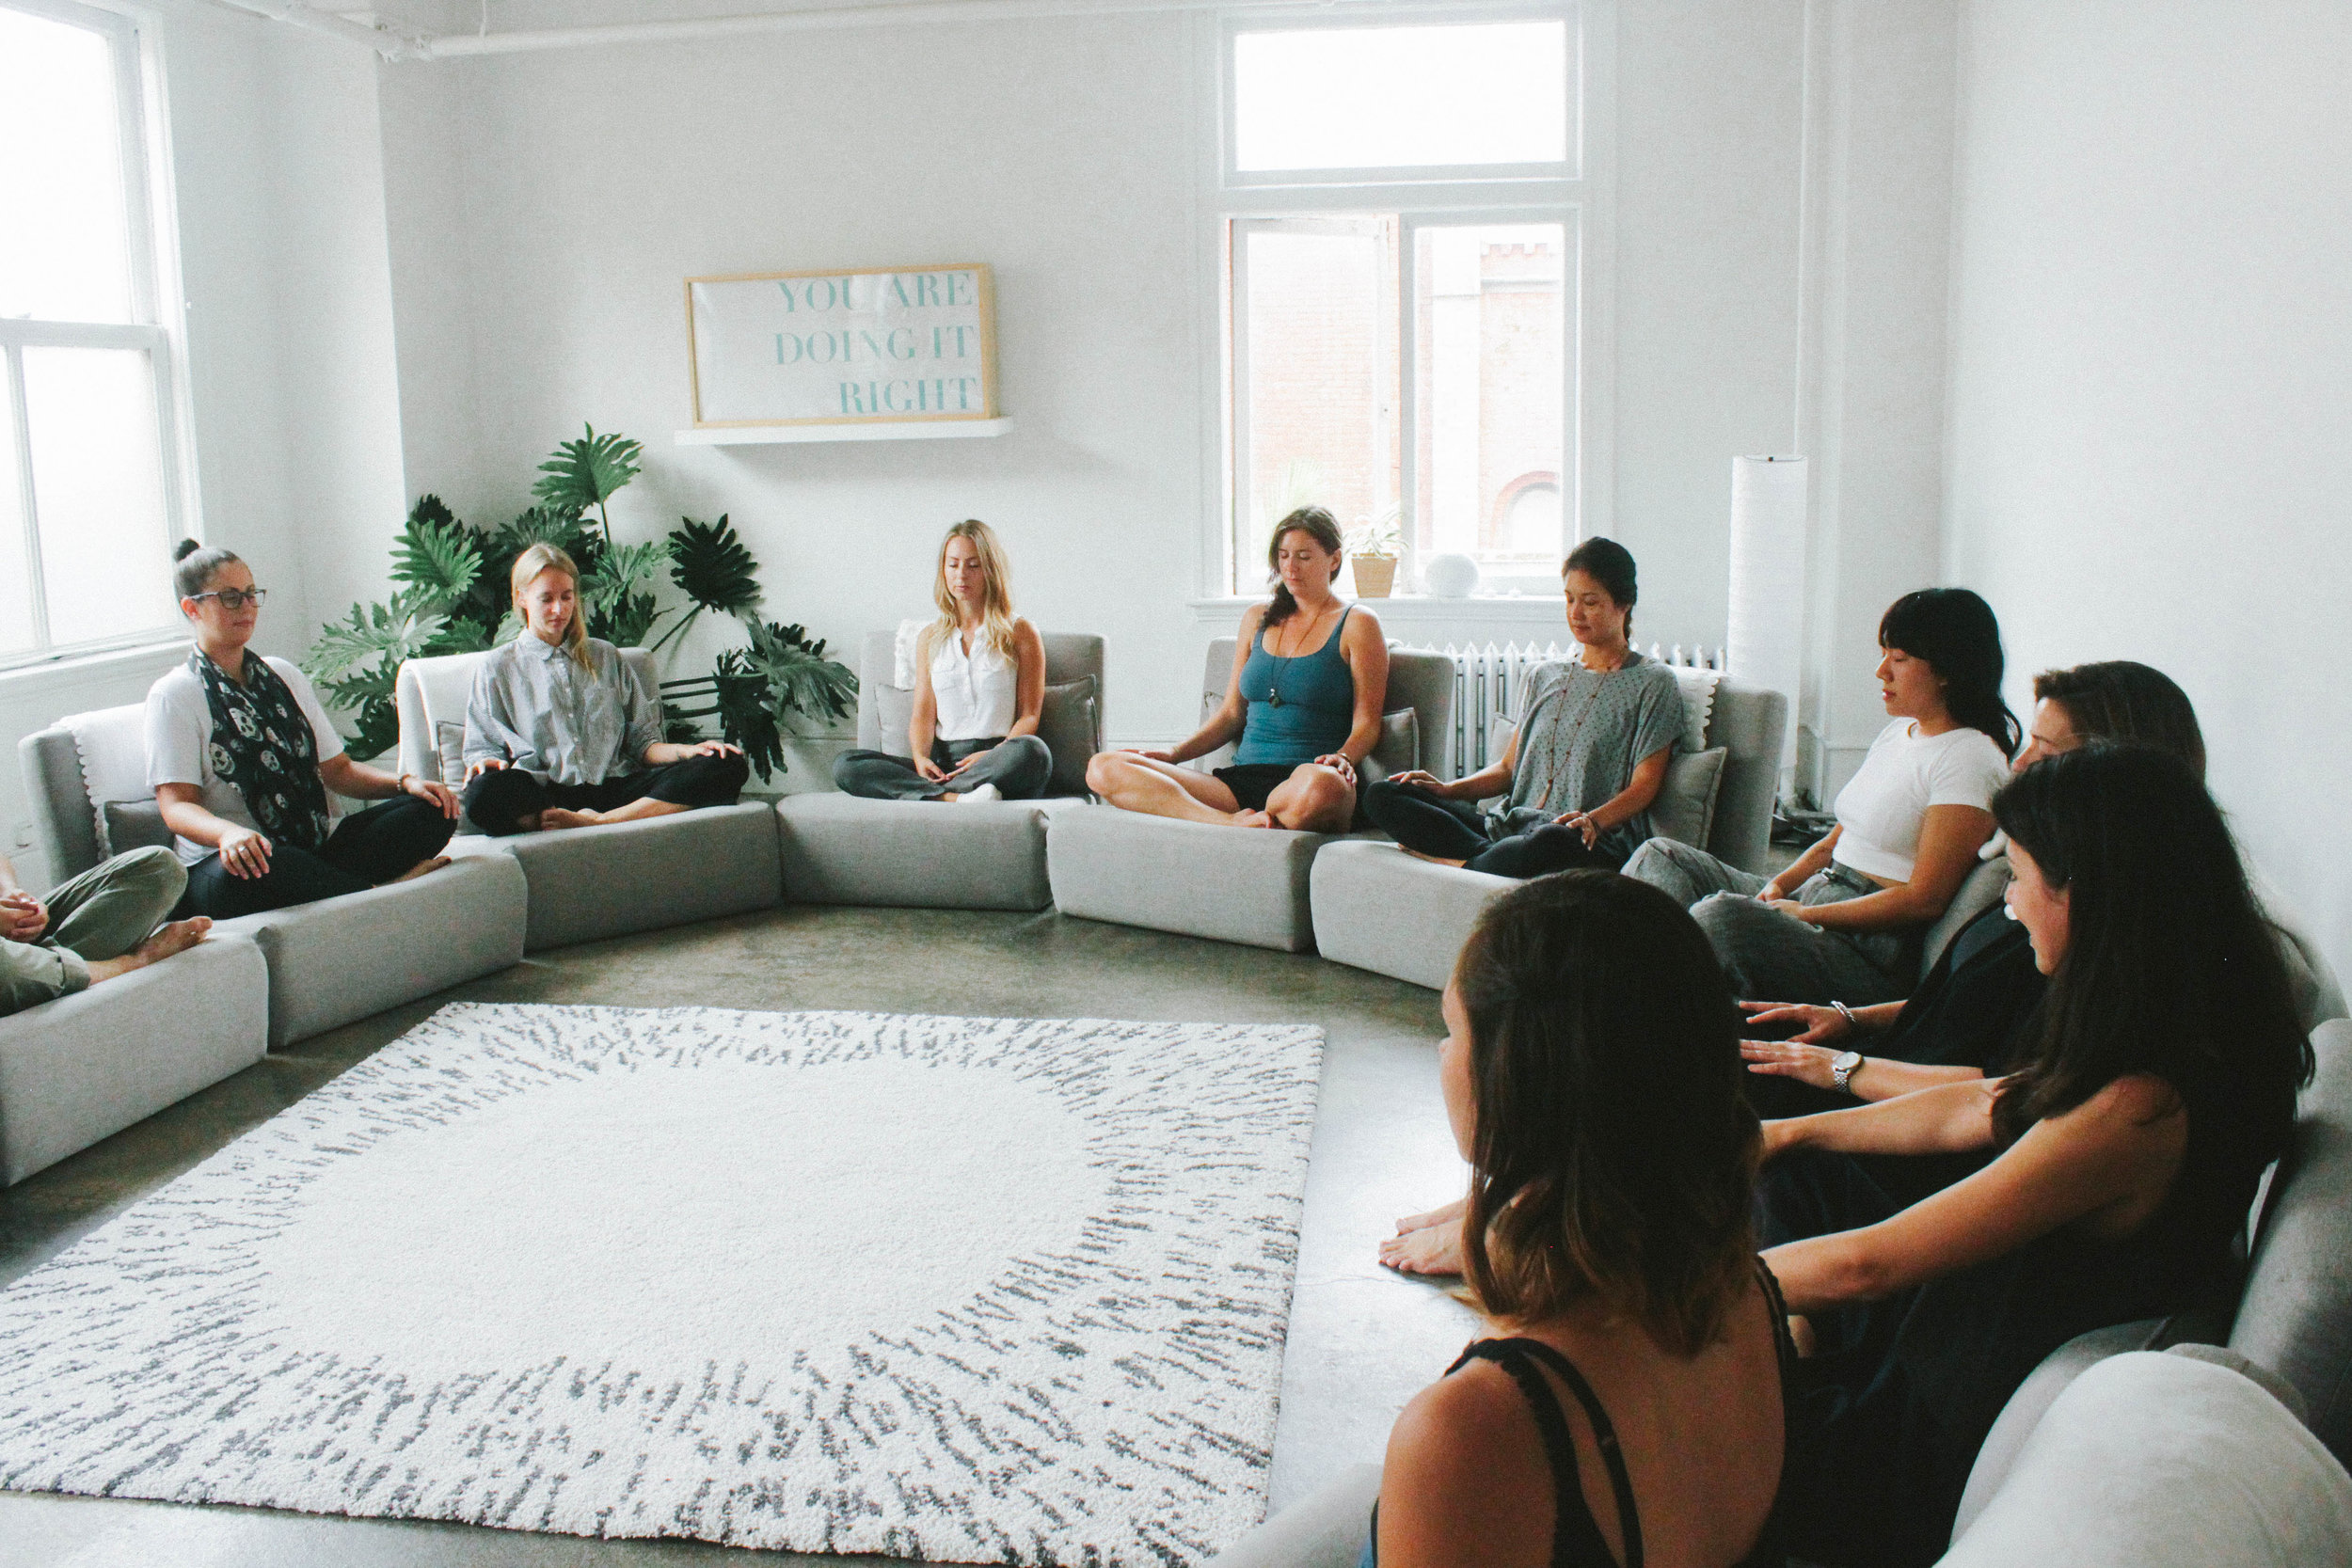 This training was one of those life-shifting experiences. Every second was filled with intense concentration / big laughter / gentle mindfulness / curious investigation.